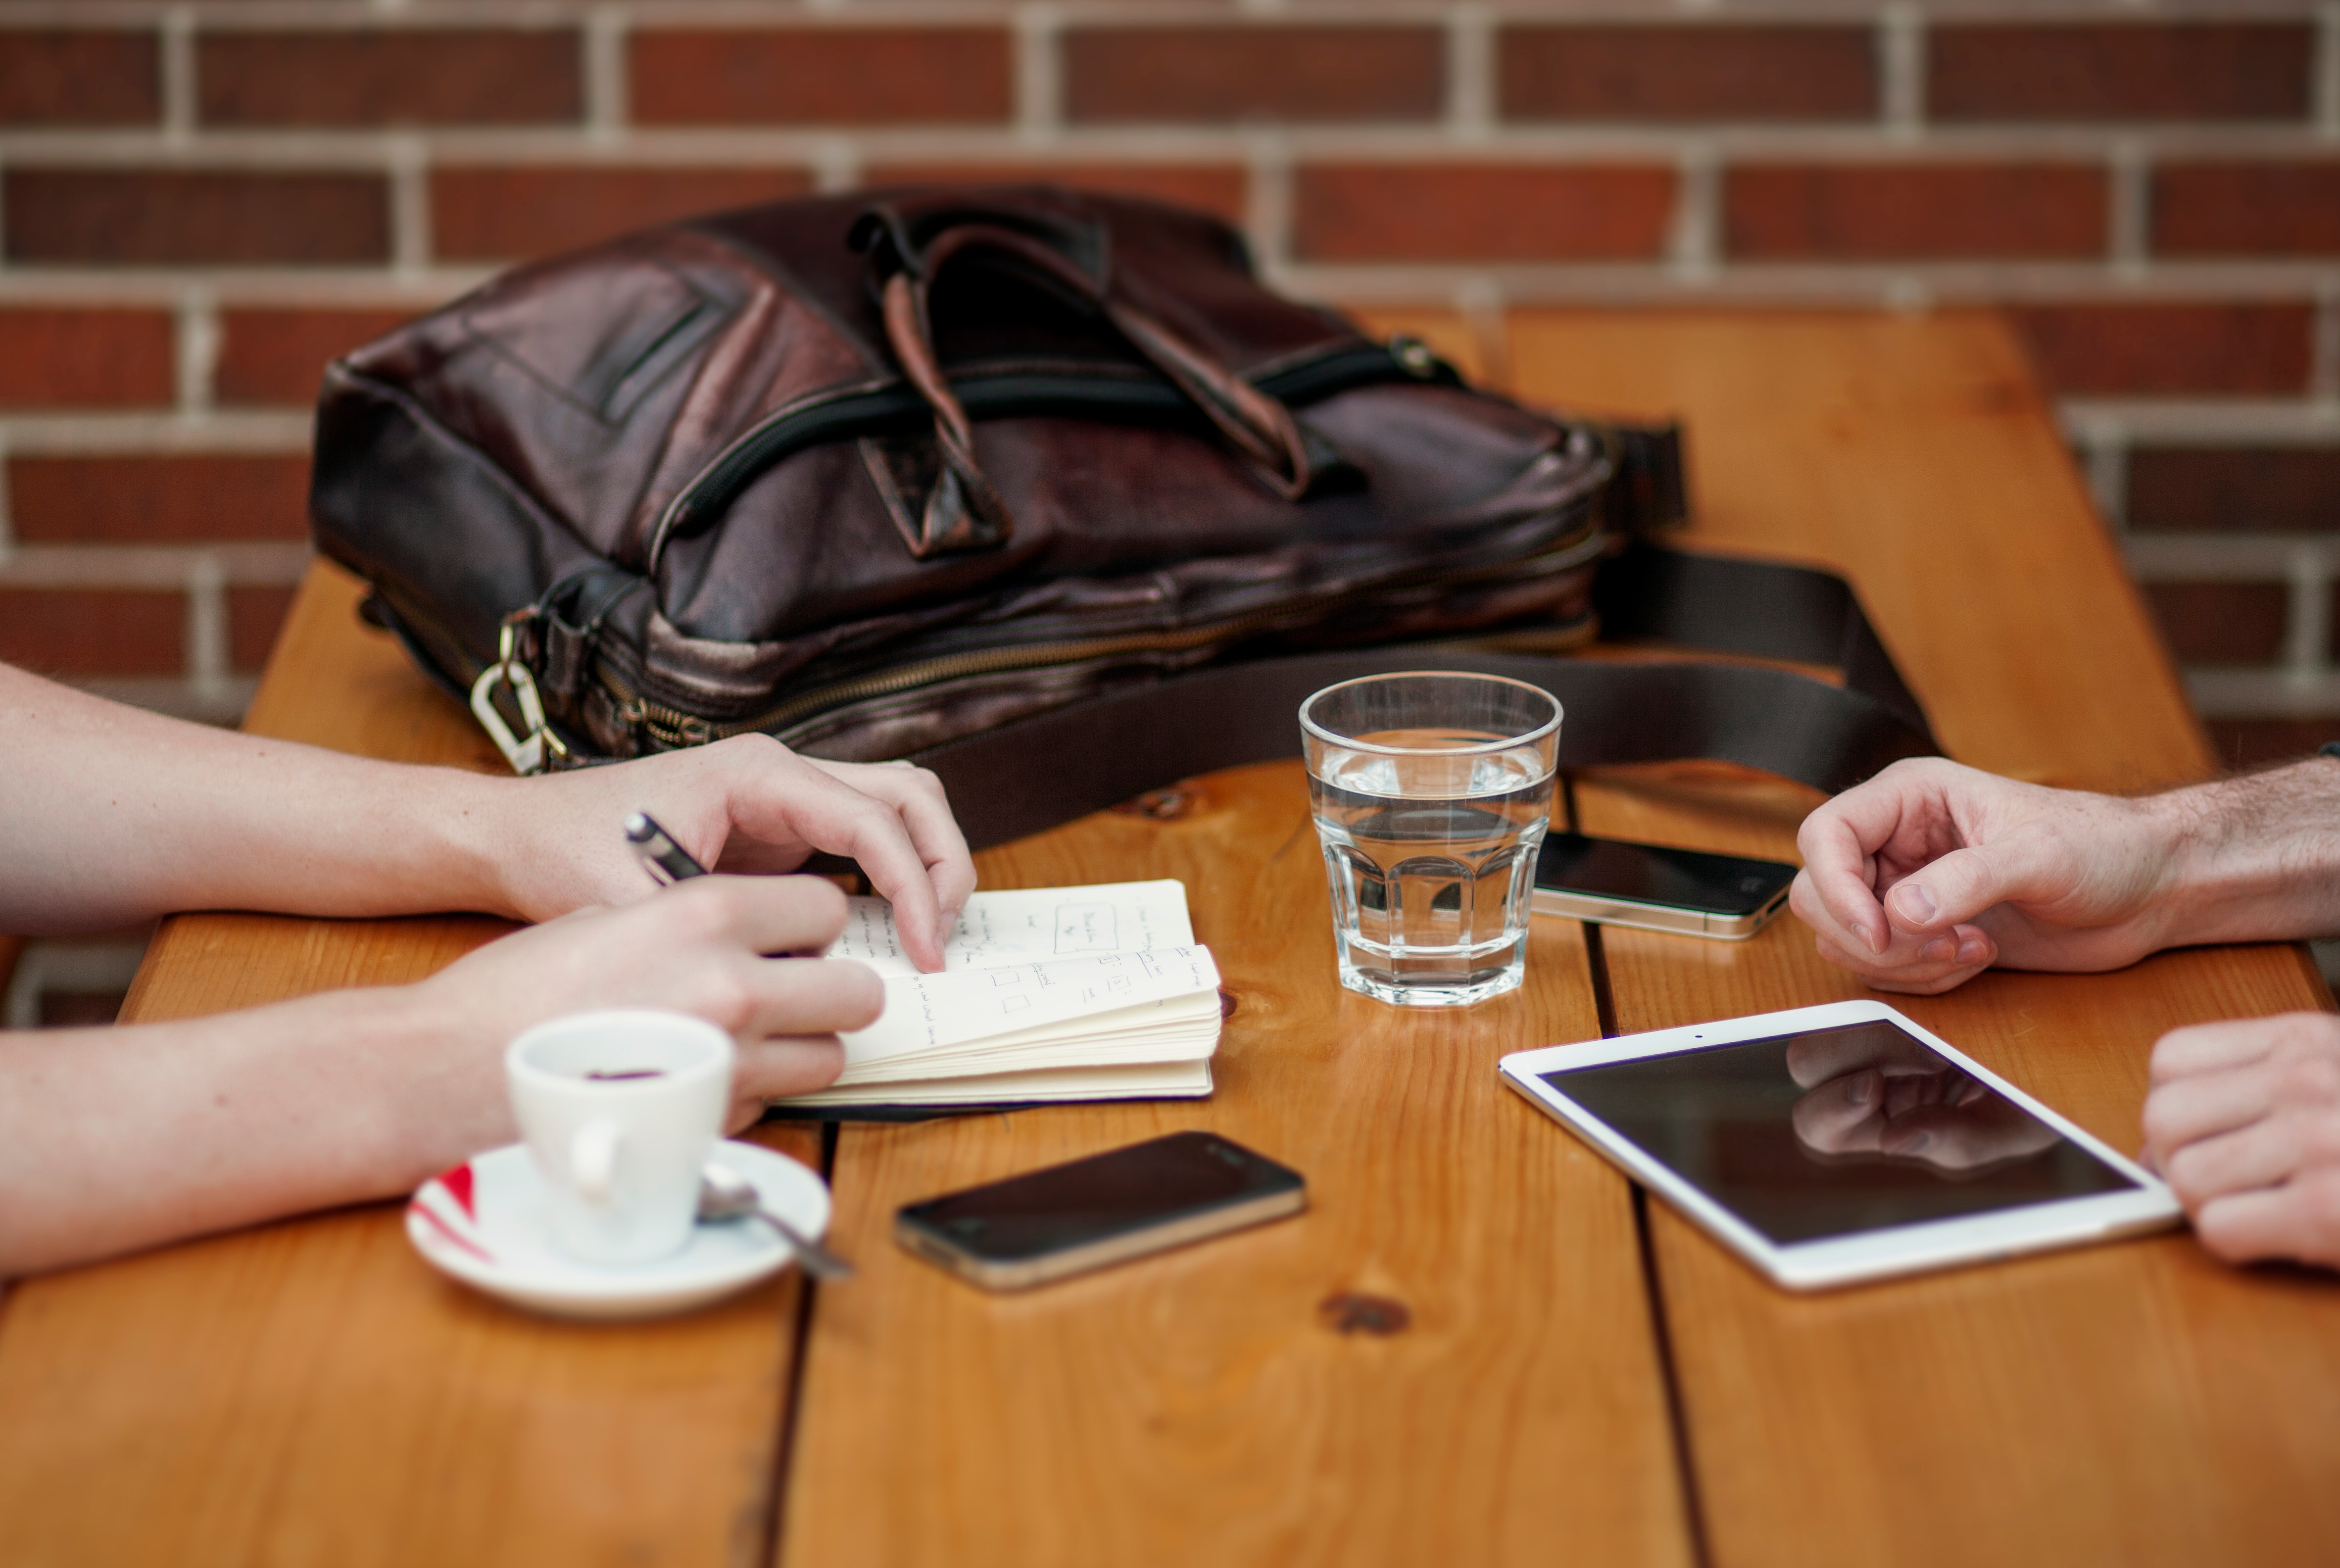 Get more out of personal contact at events